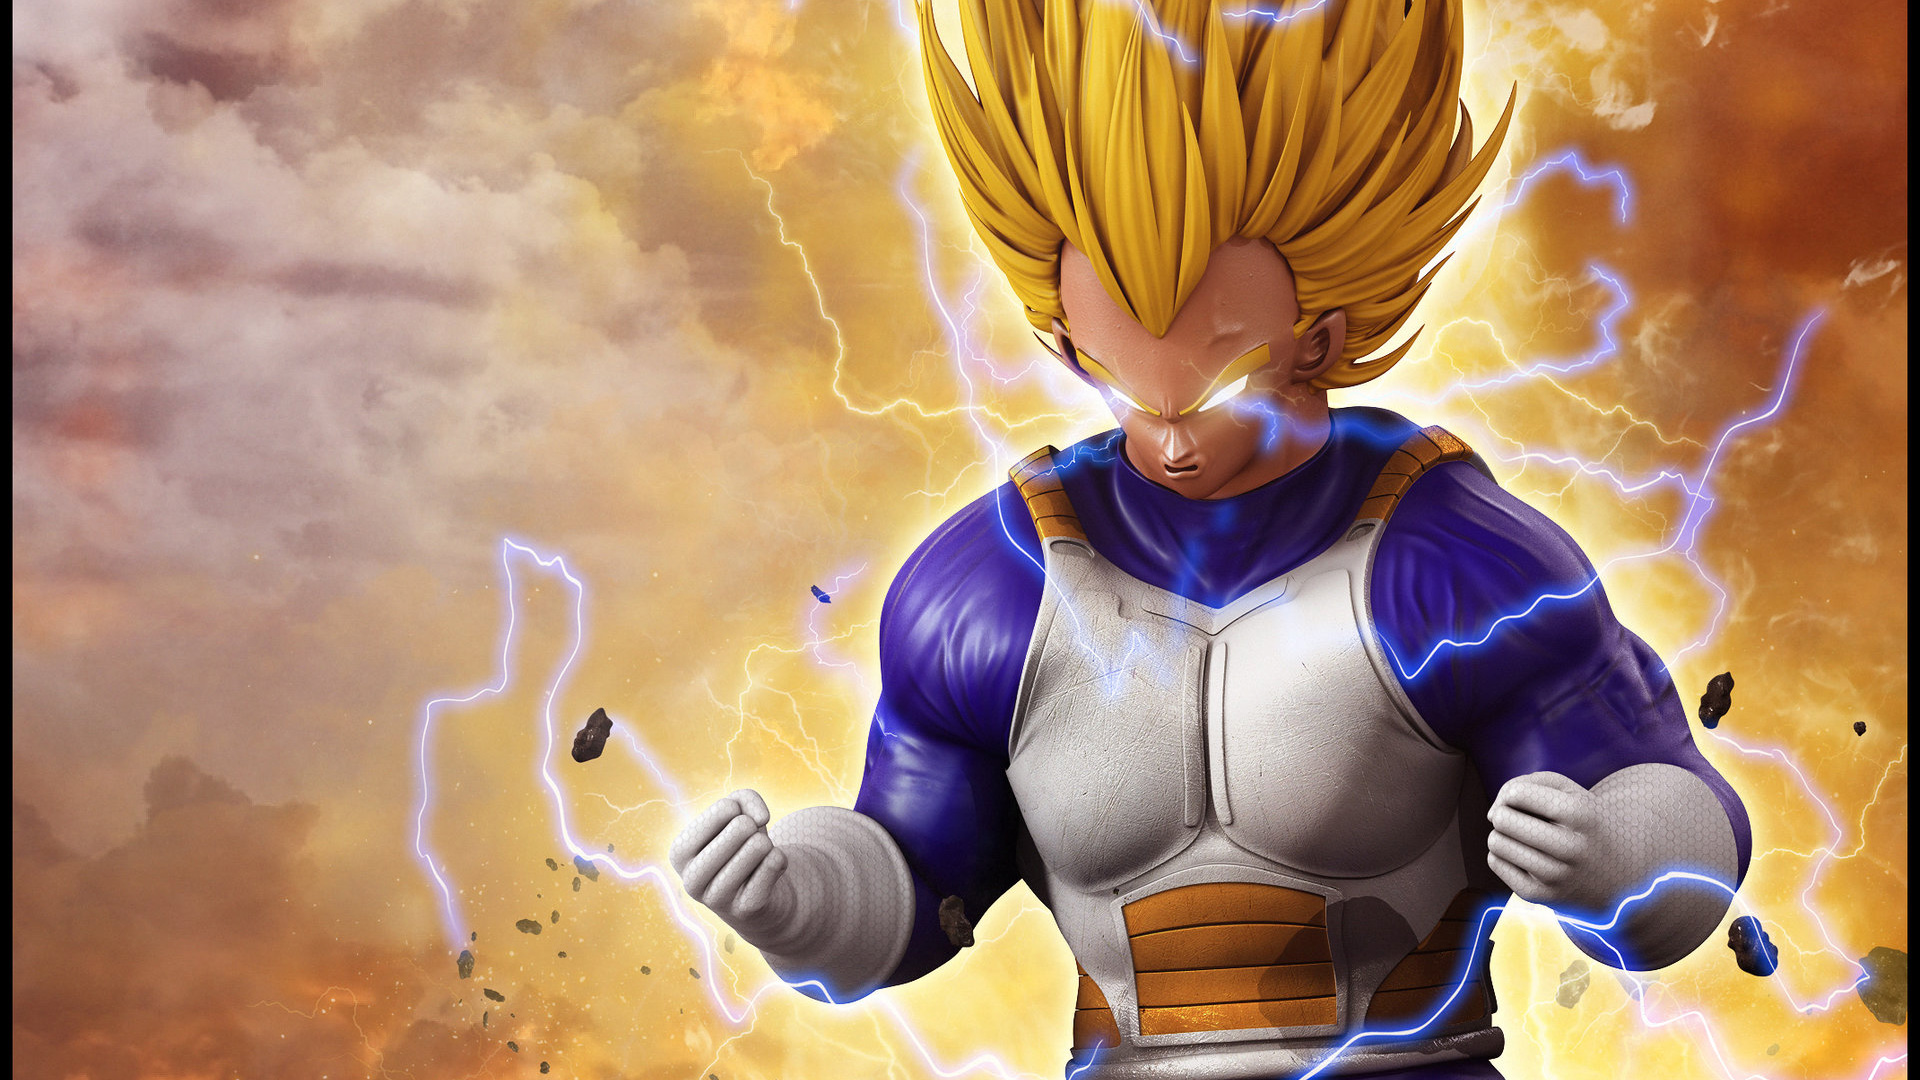 Vegeta 3d Art, HD Anime, 4k Wallpapers, Images, Backgrounds